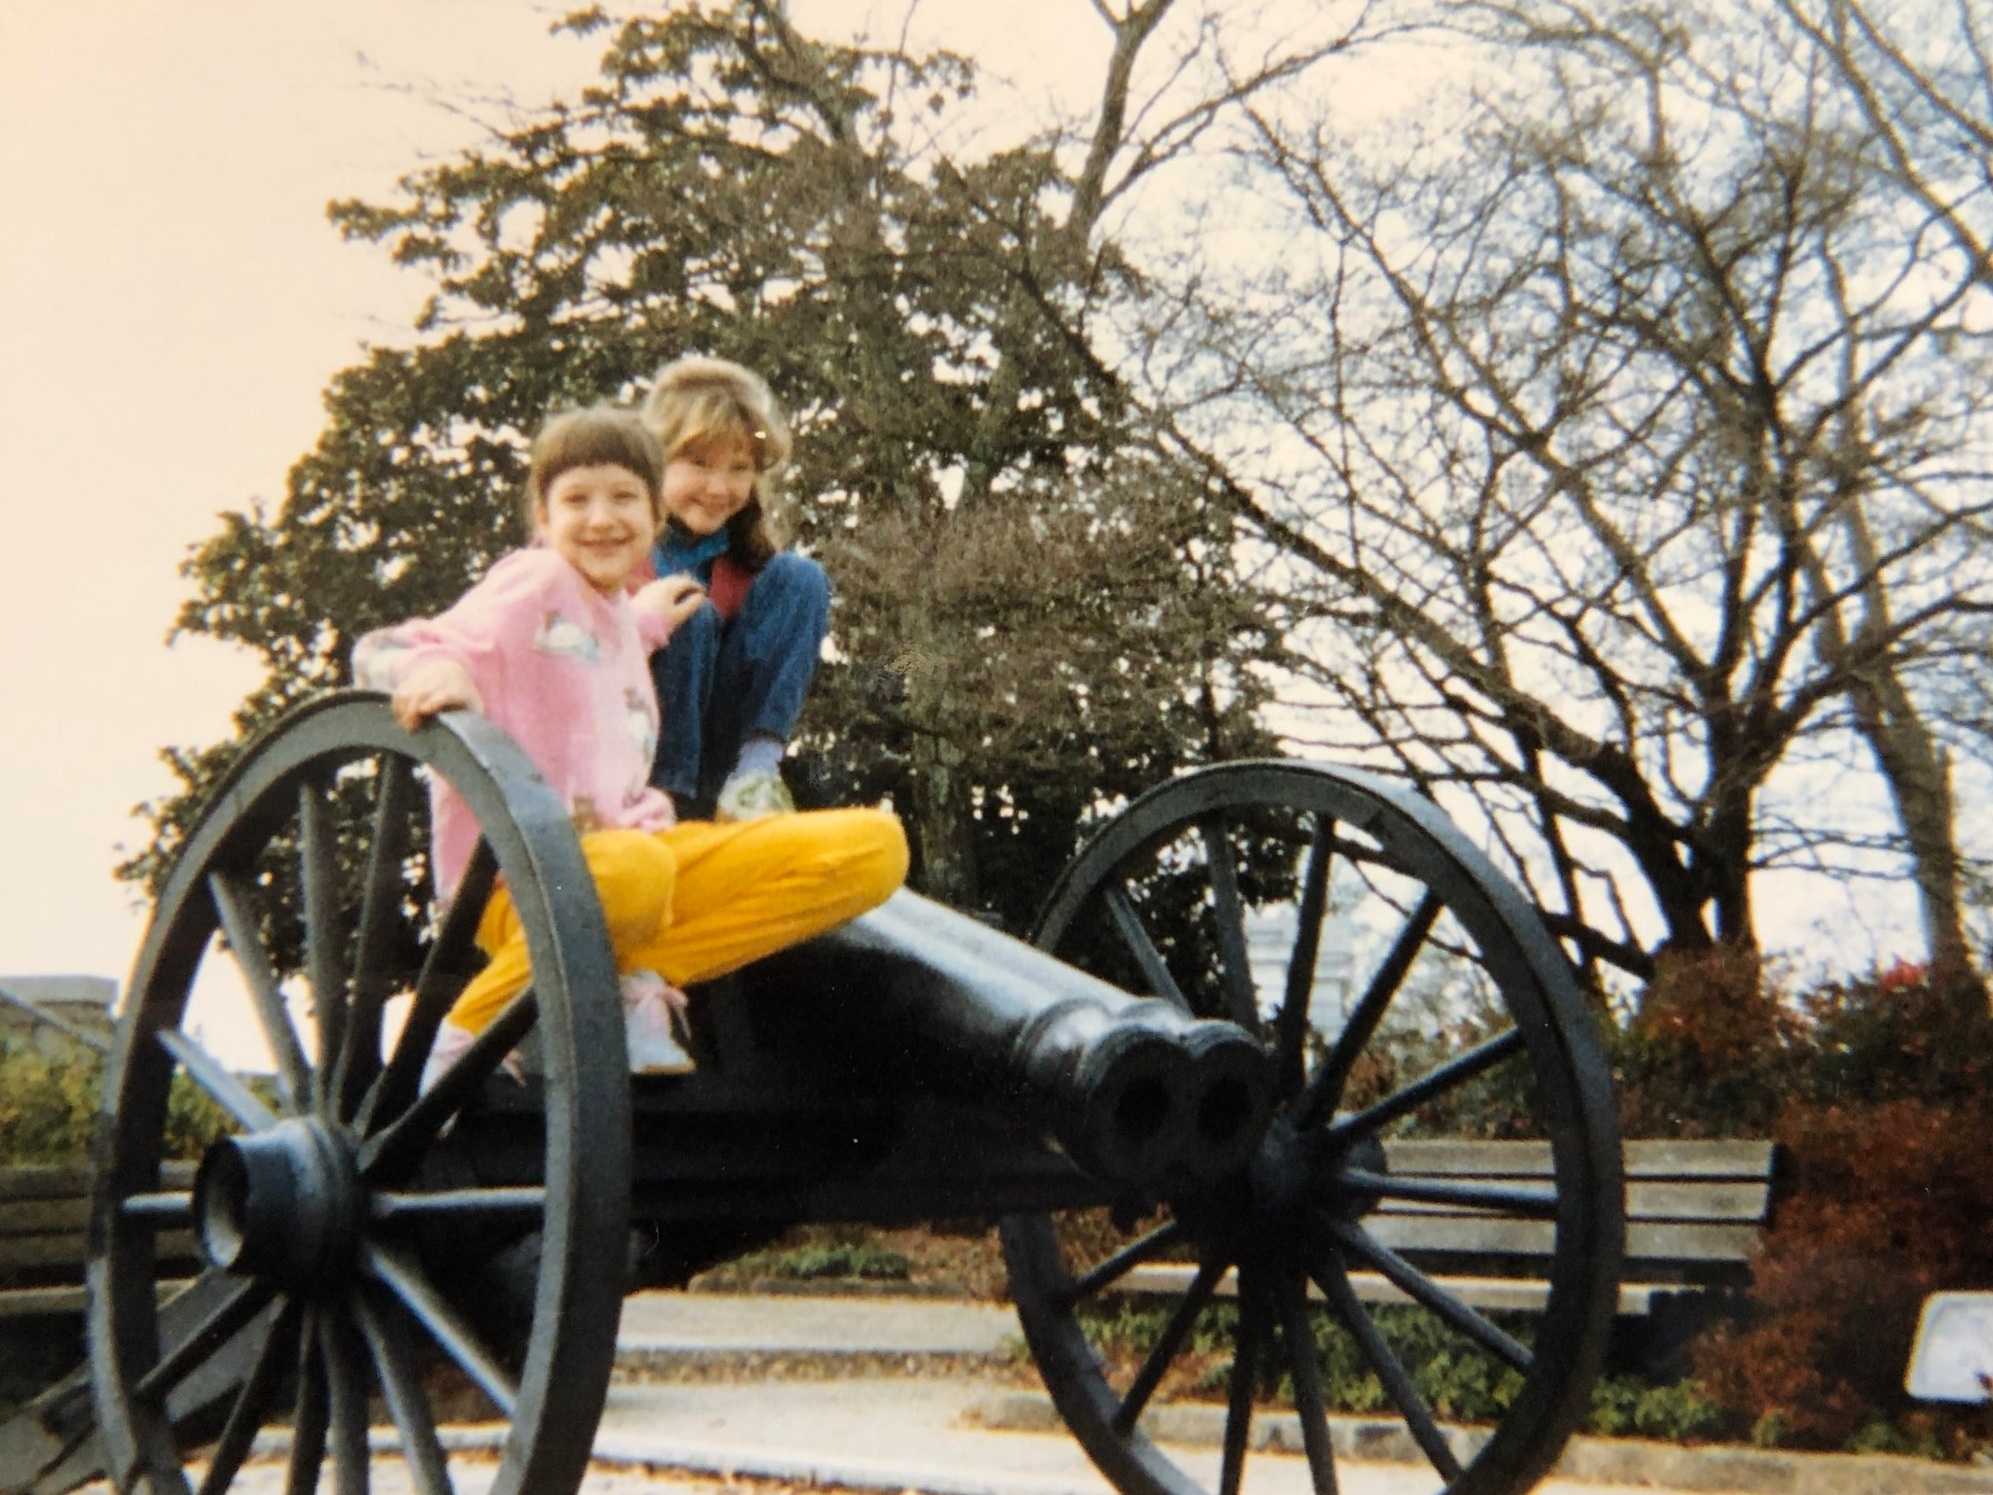 Me in the front (with yellow pants) posing on the double barrel cannon in downtown Athens with a childhood friend.